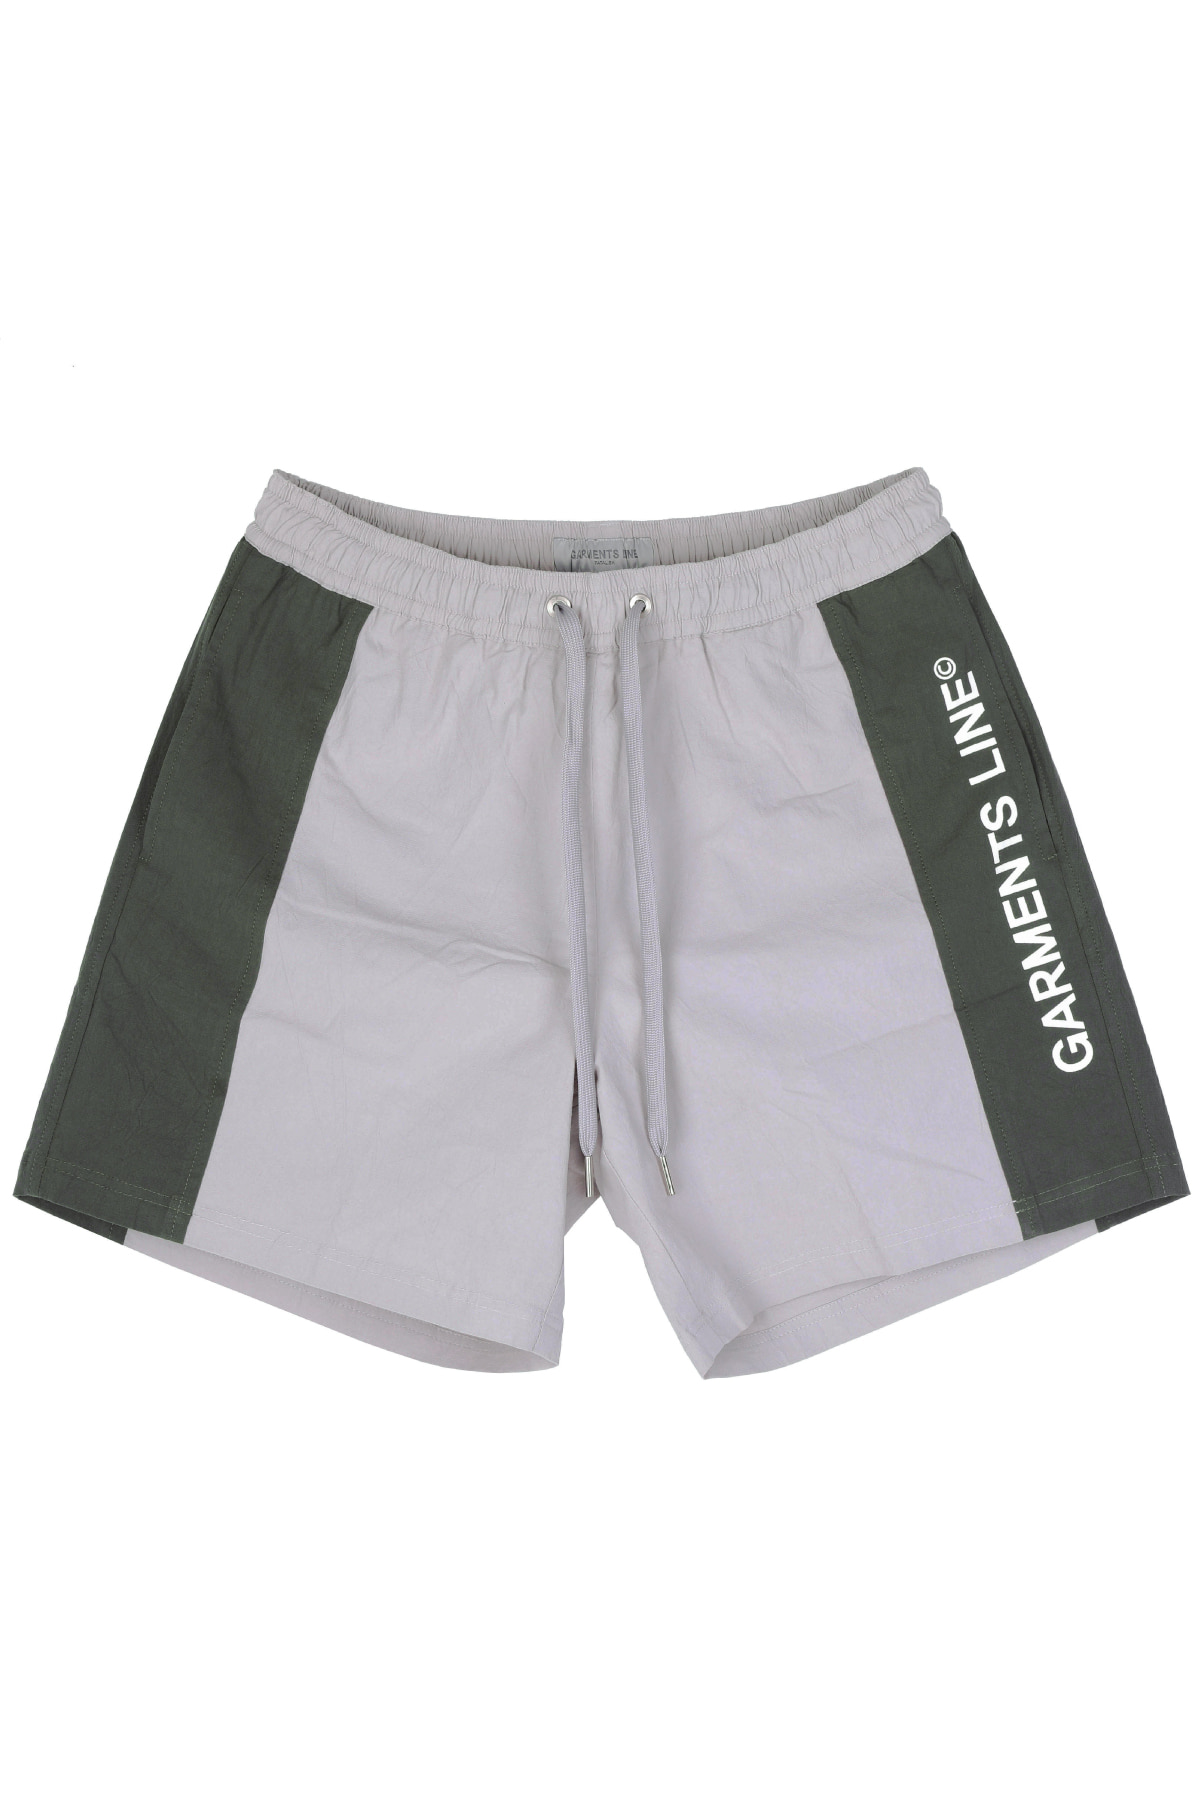 #G010 color combi short pants (khaki)